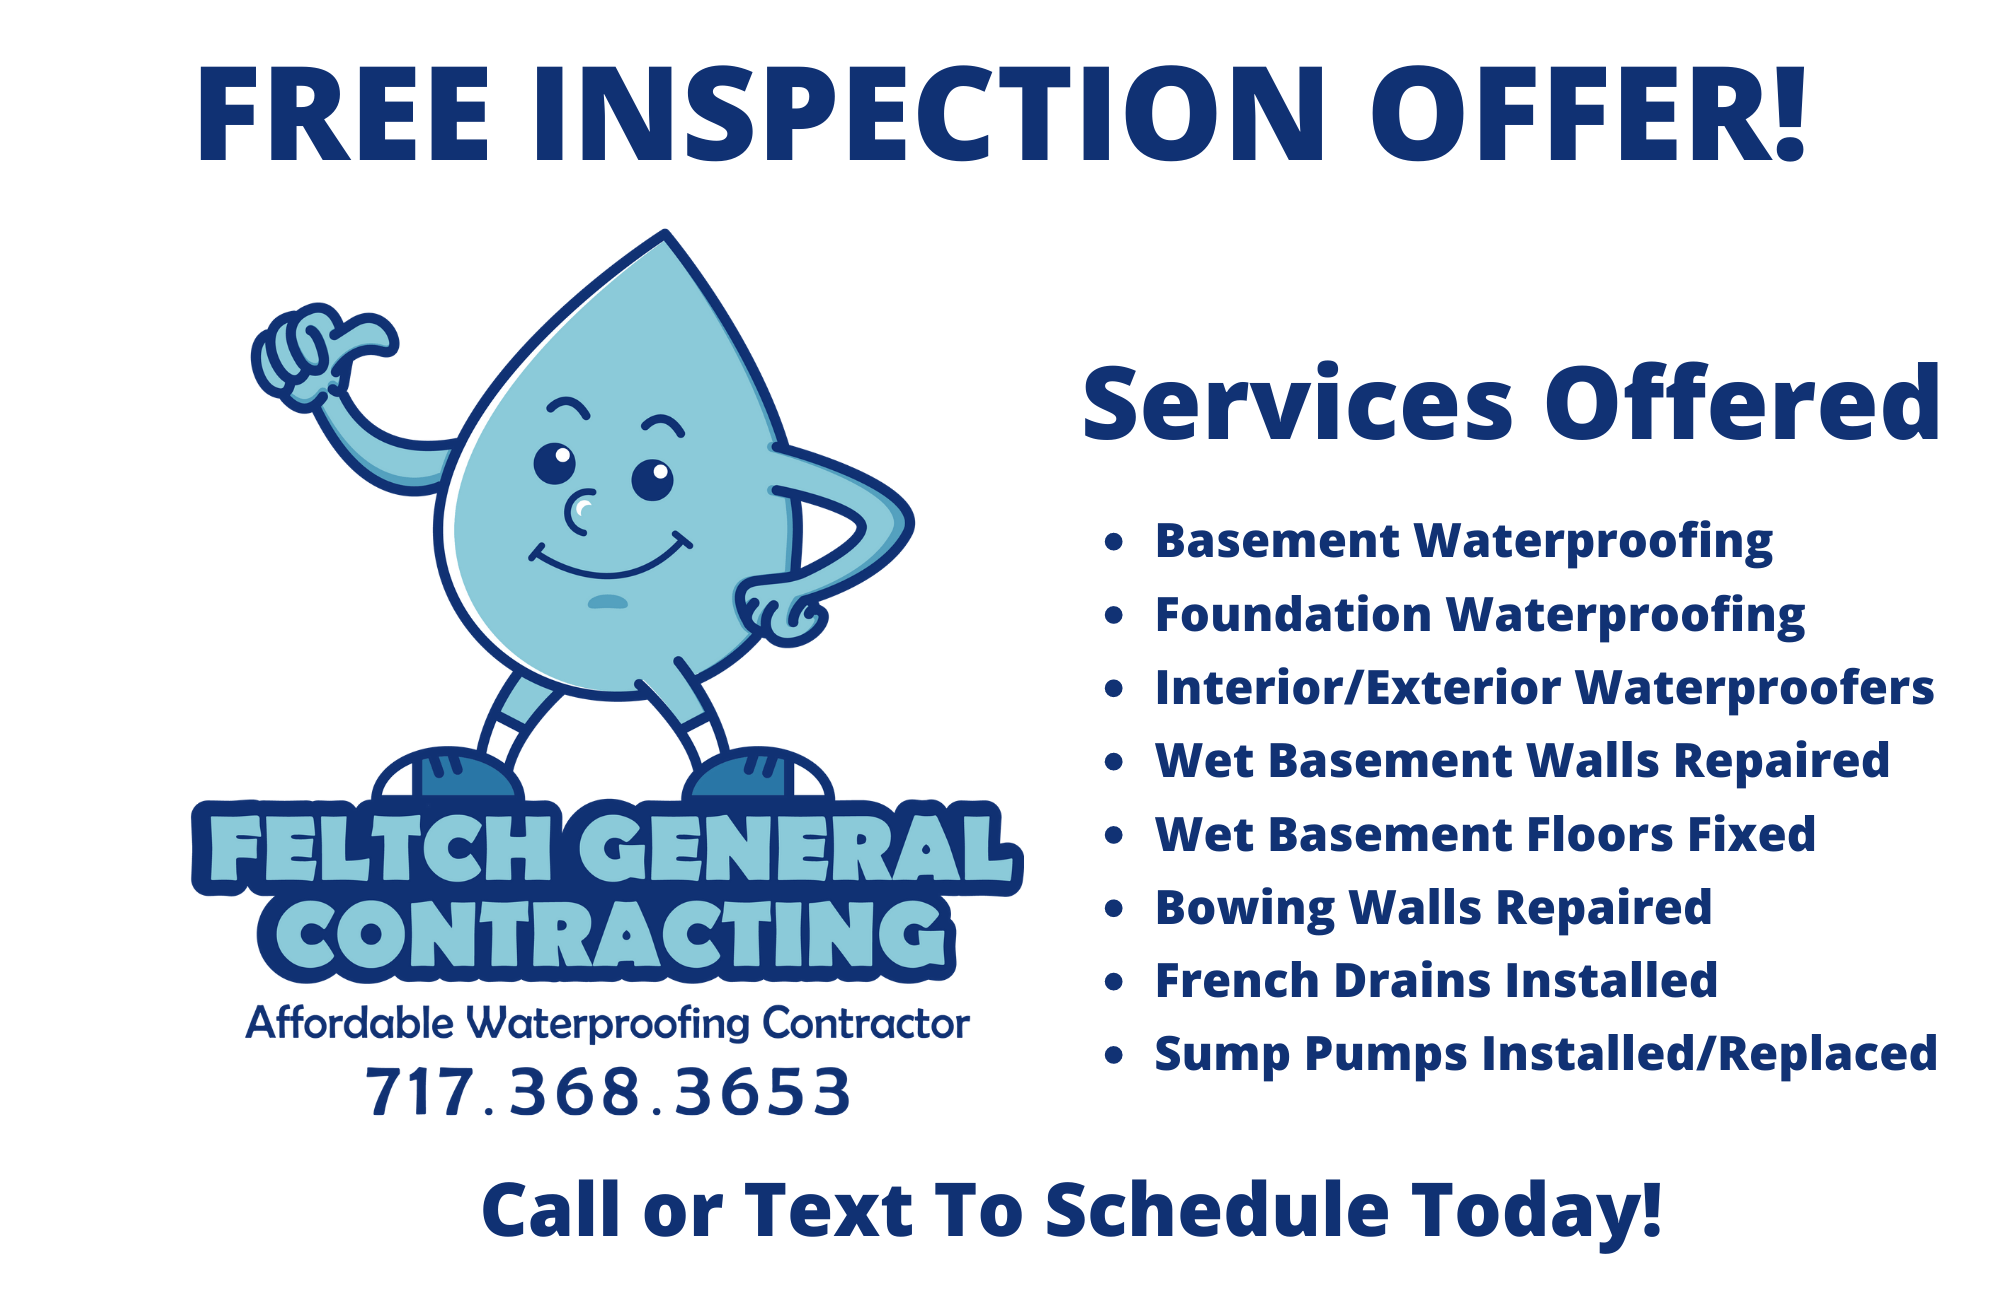 Free Waterproofing Inspection Offer for